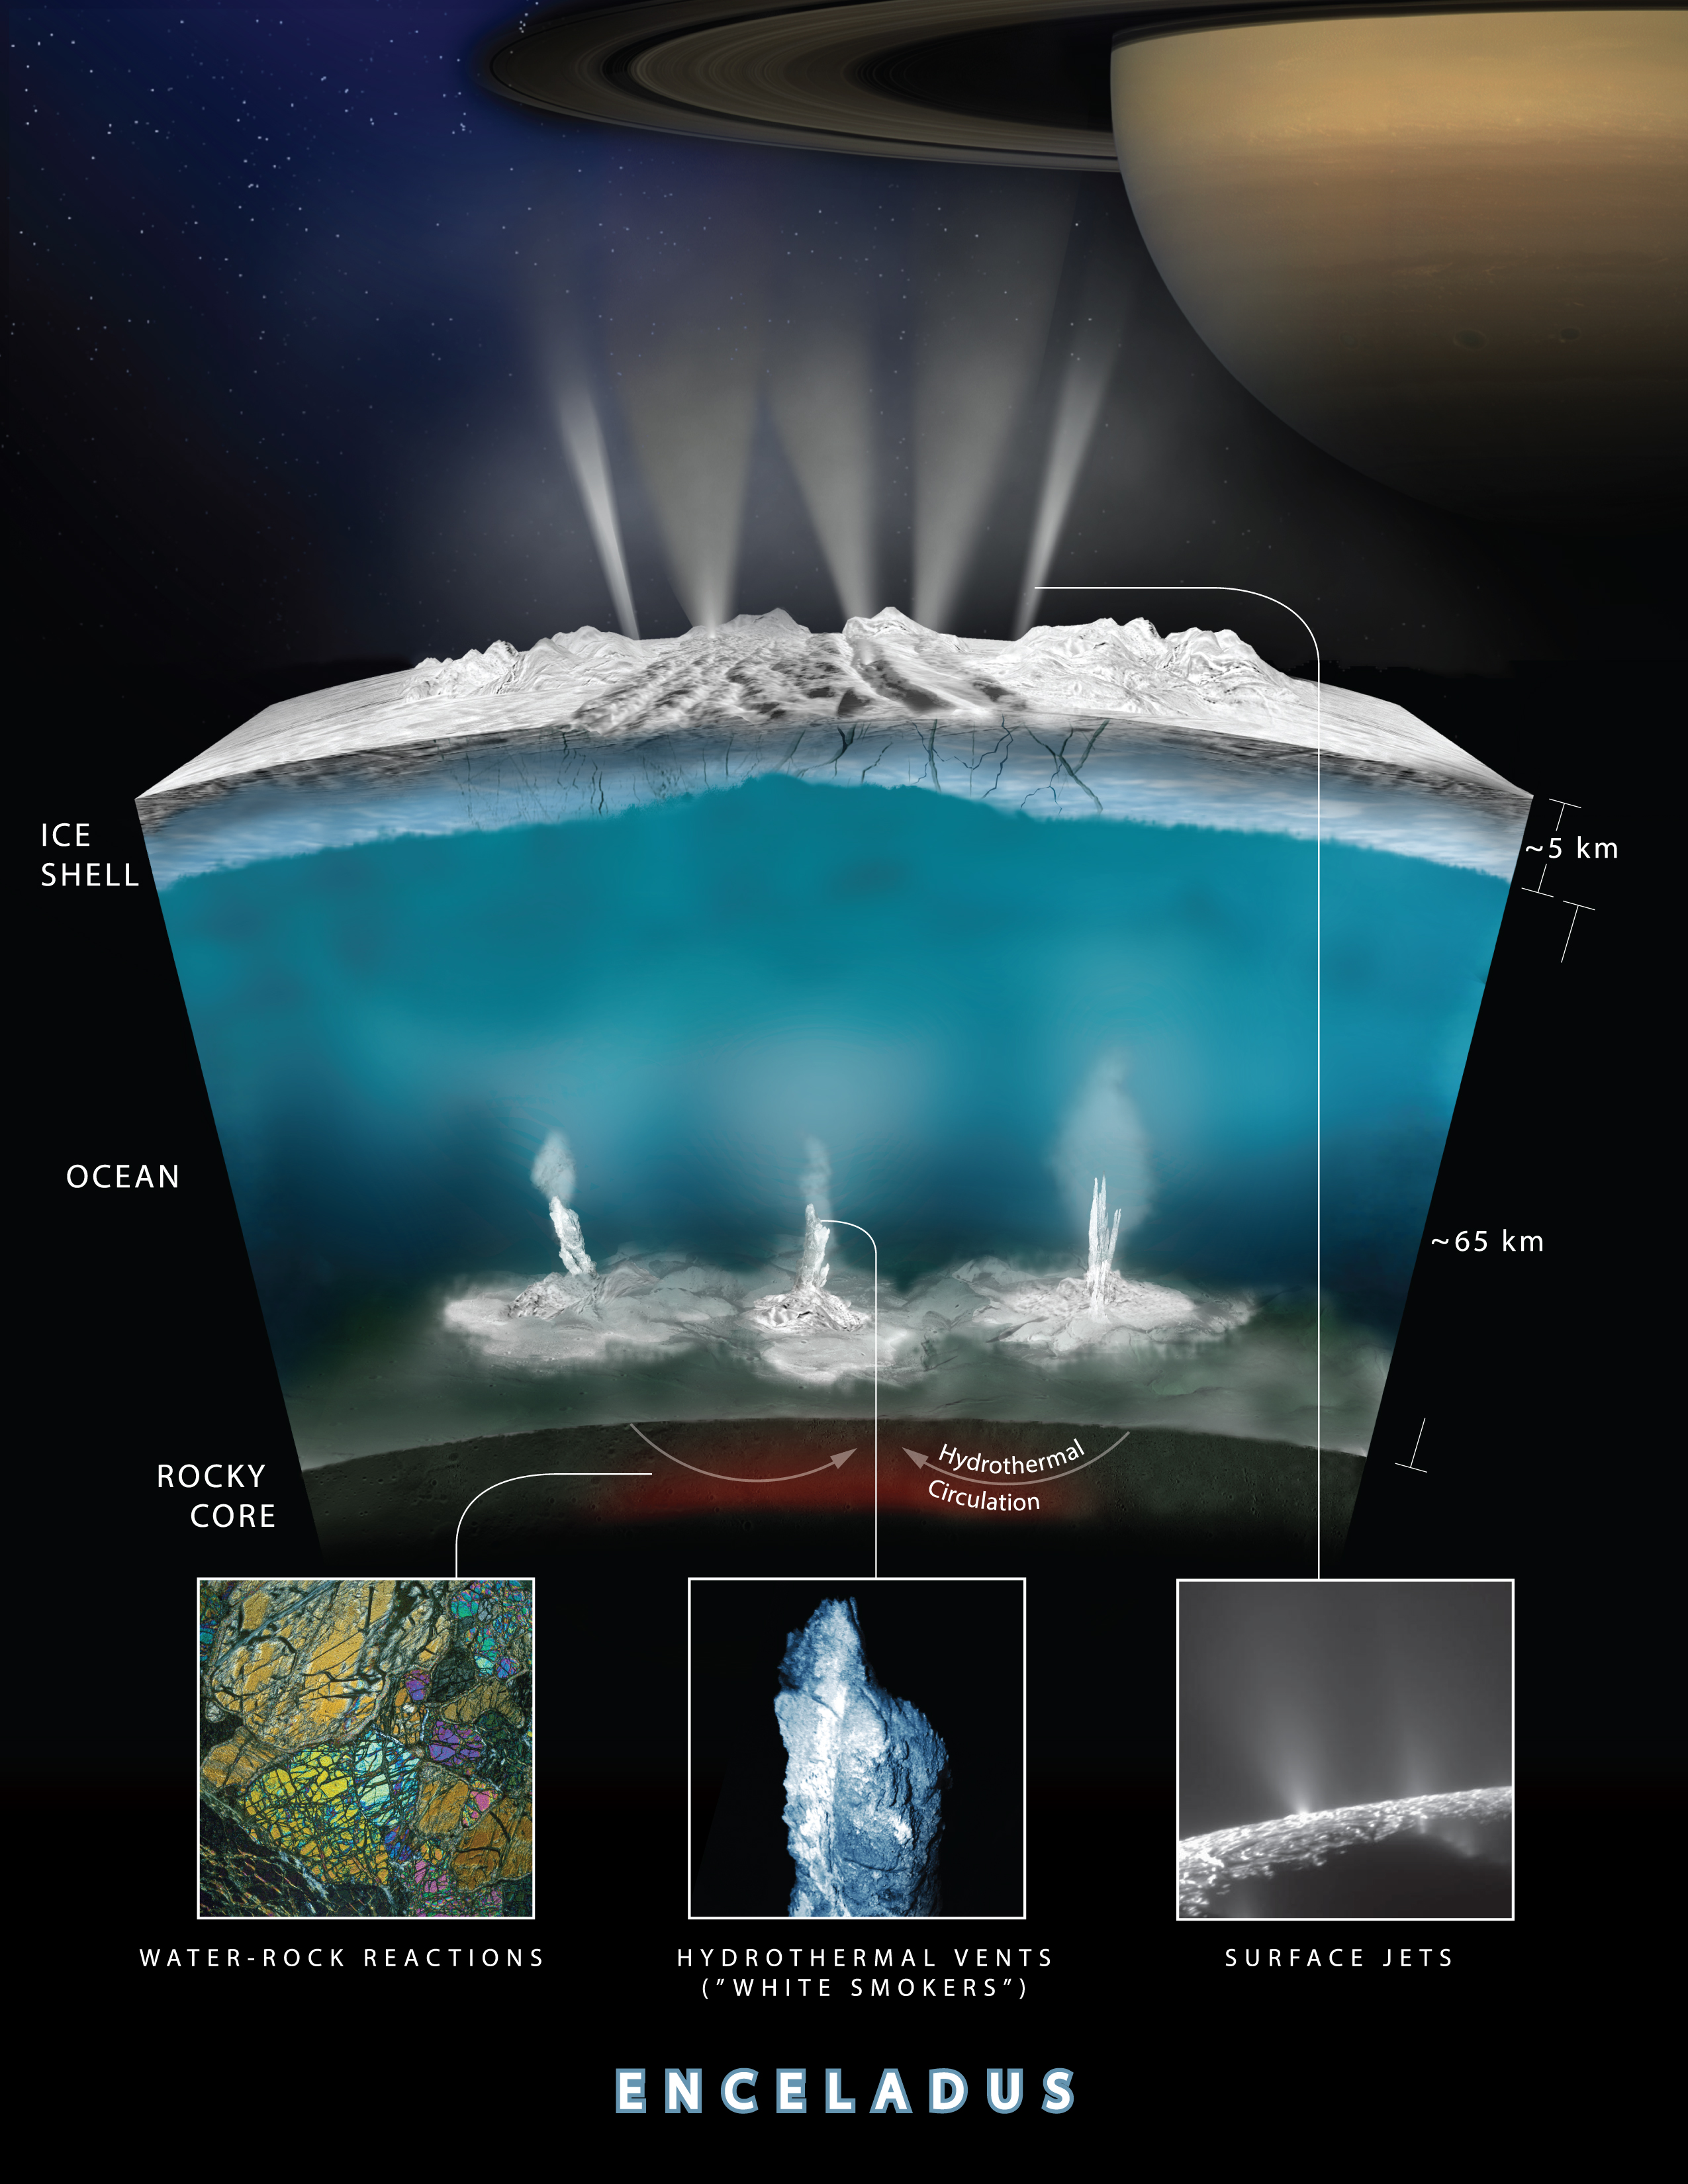 hydrothermal processes on Enceladus